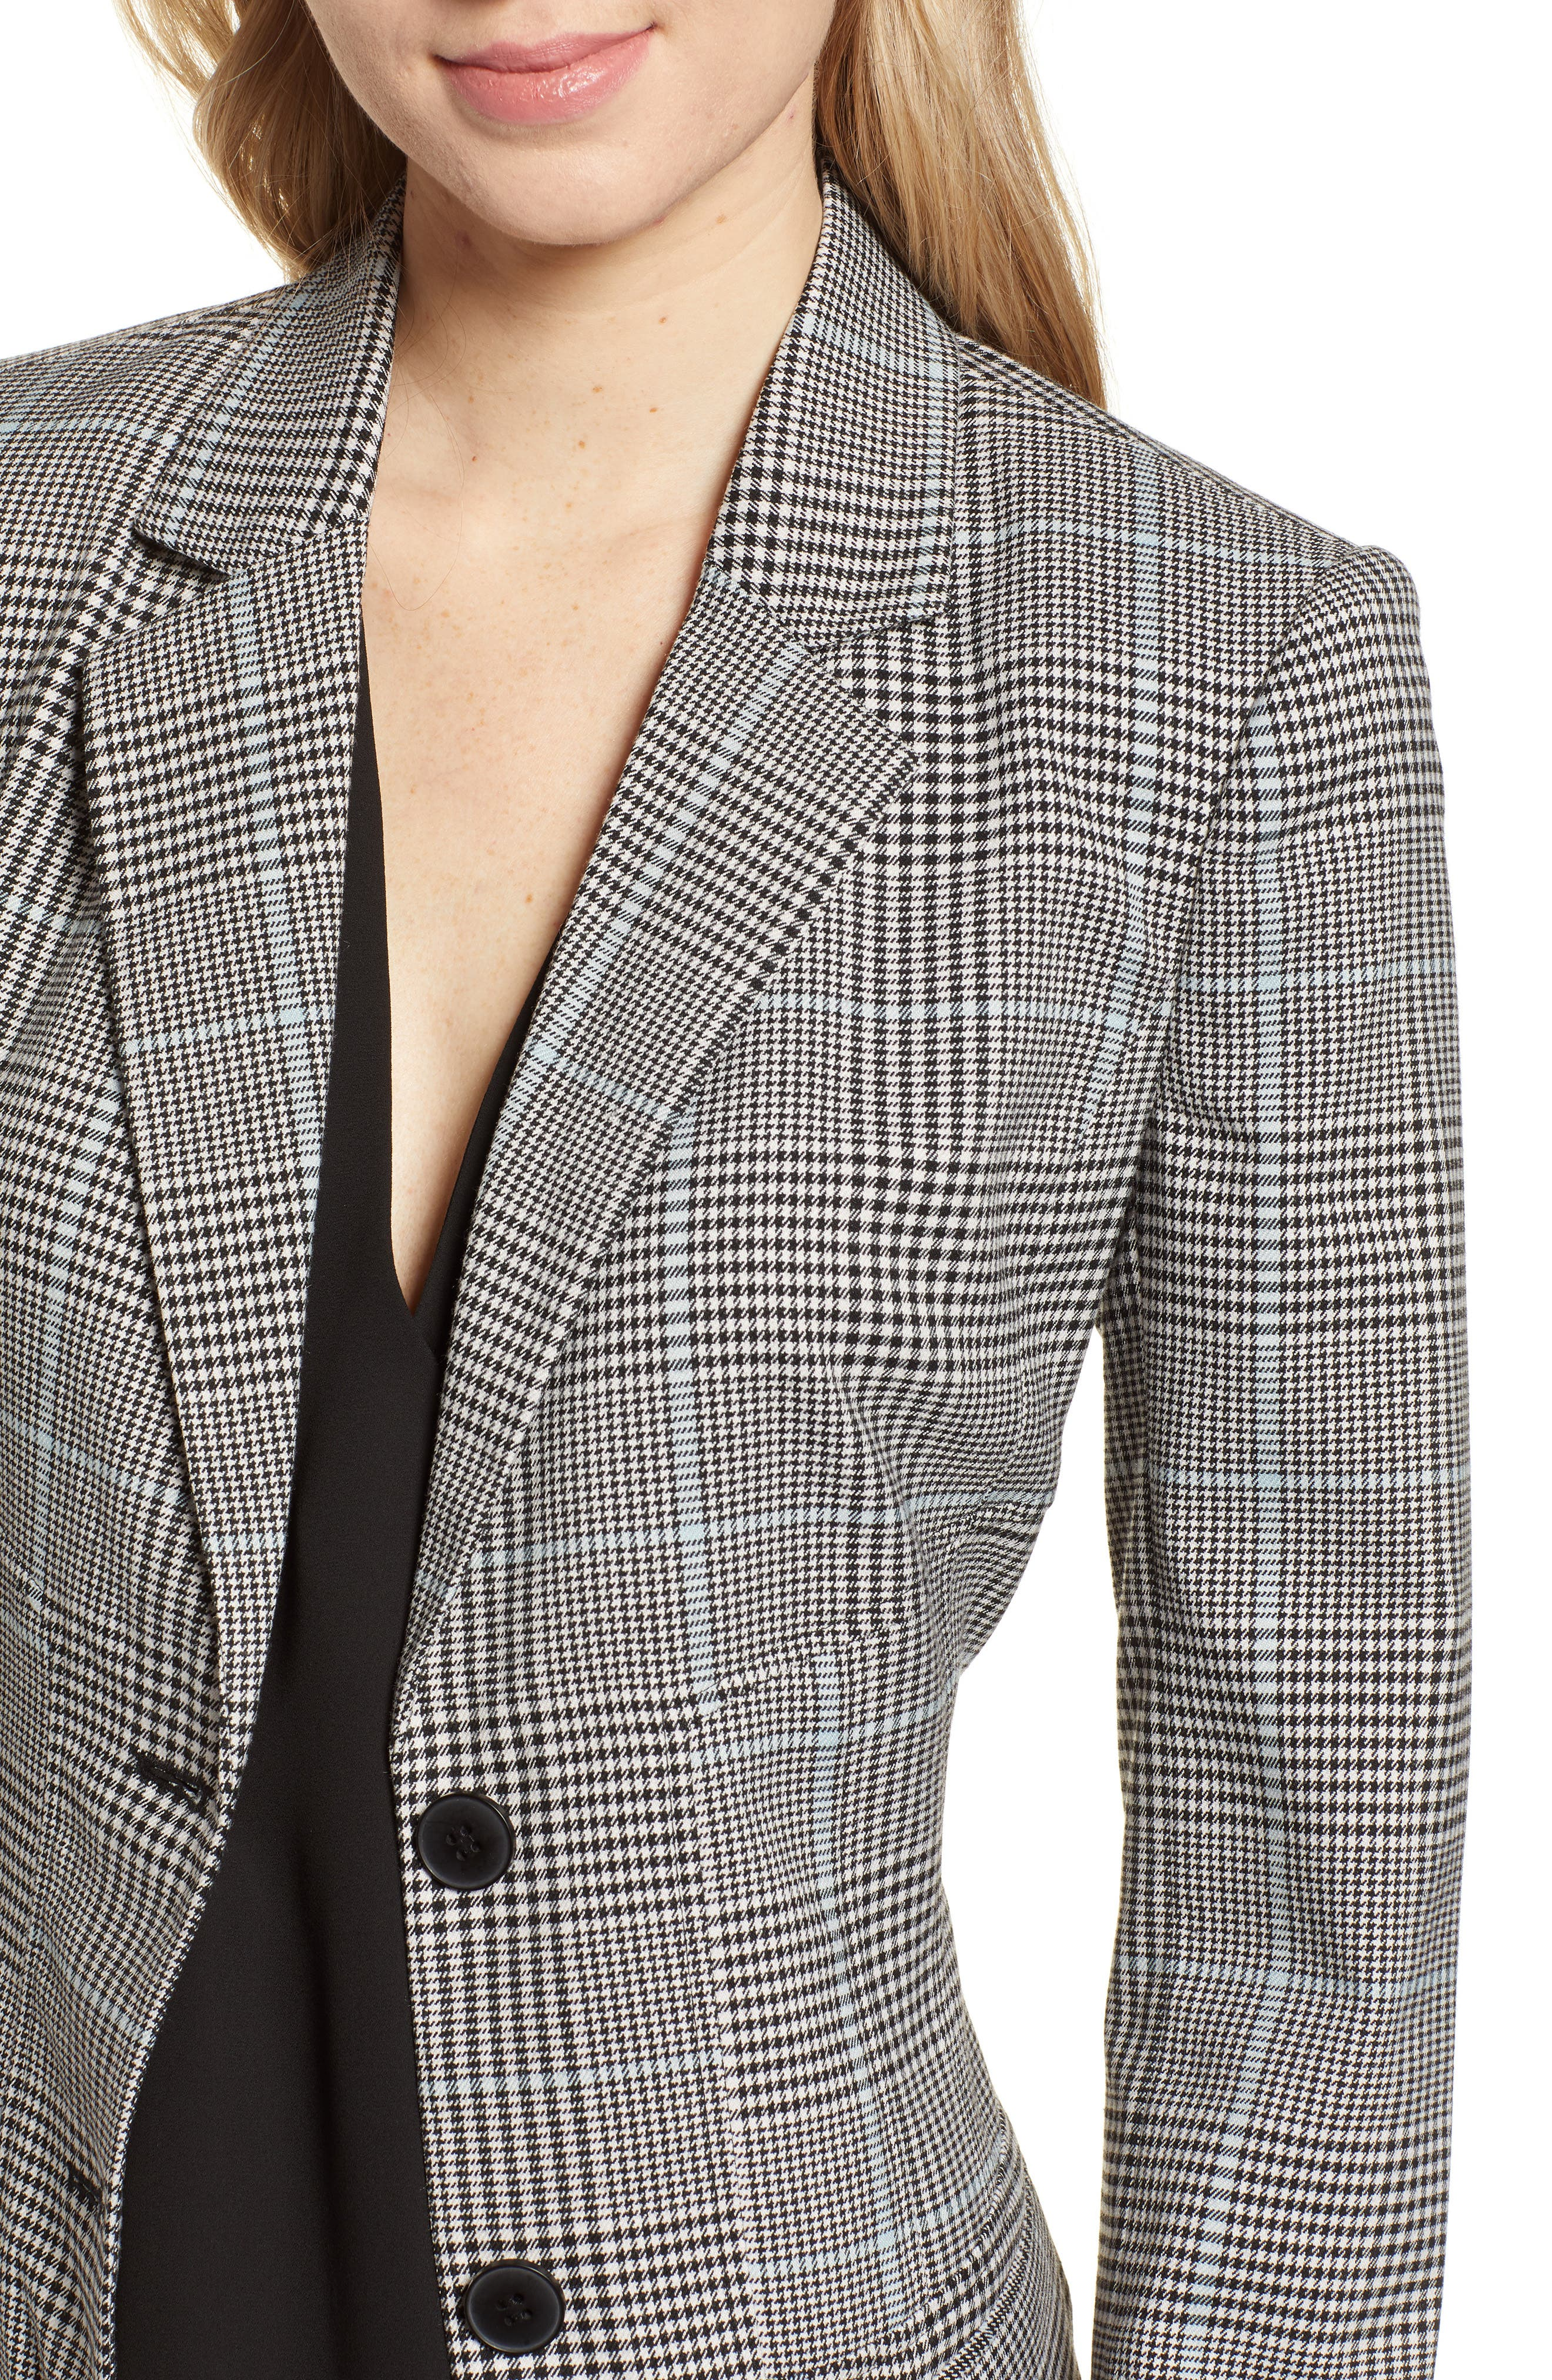 CHELSEA28, Plaid Blazer, Alternate thumbnail 5, color, BLUE OMPHALODES CHECK PATTERN